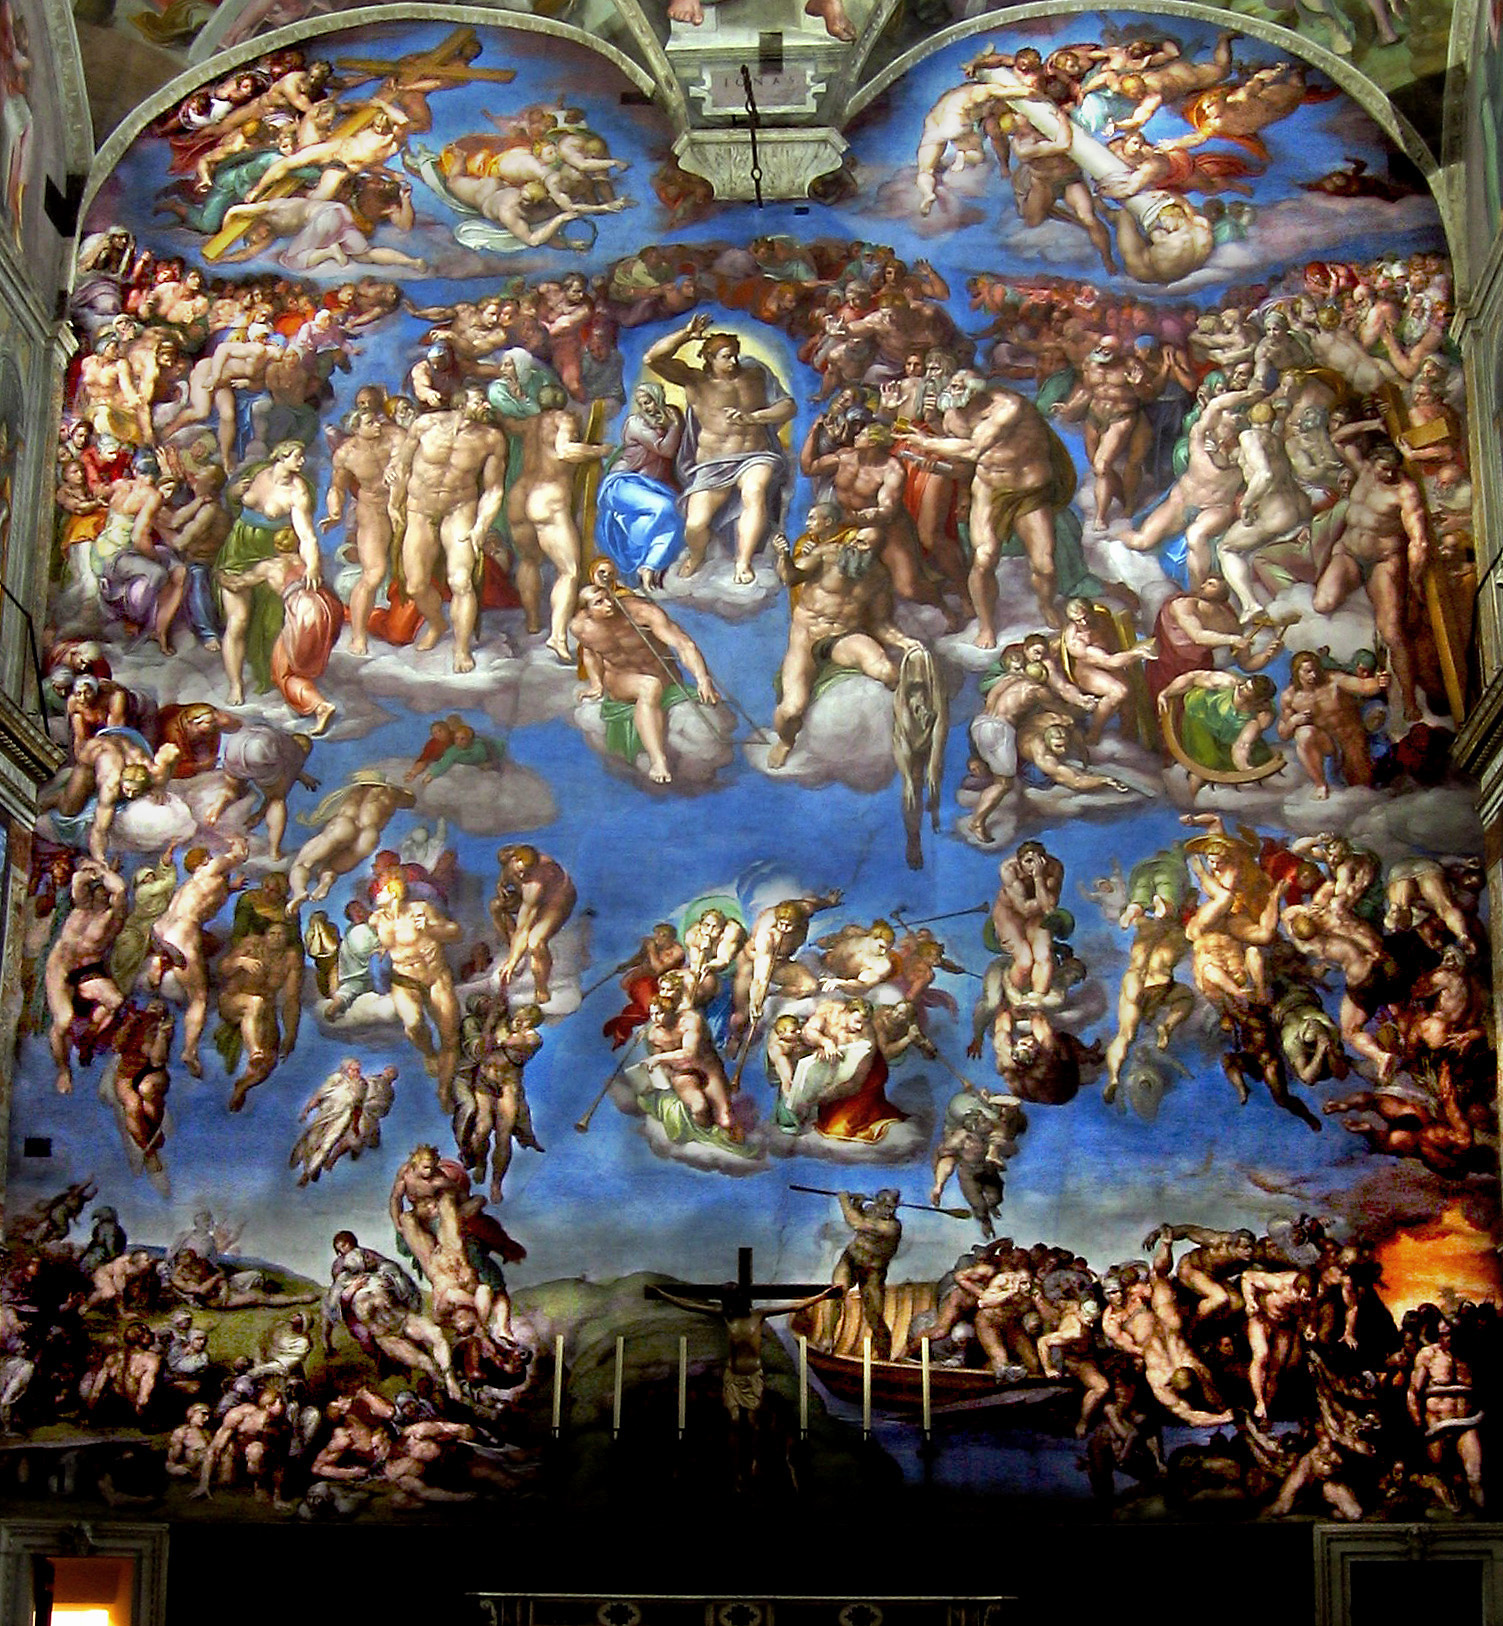 https://upload.wikimedia.org/wikipedia/commons/9/90/TheLastJudgment.jpg